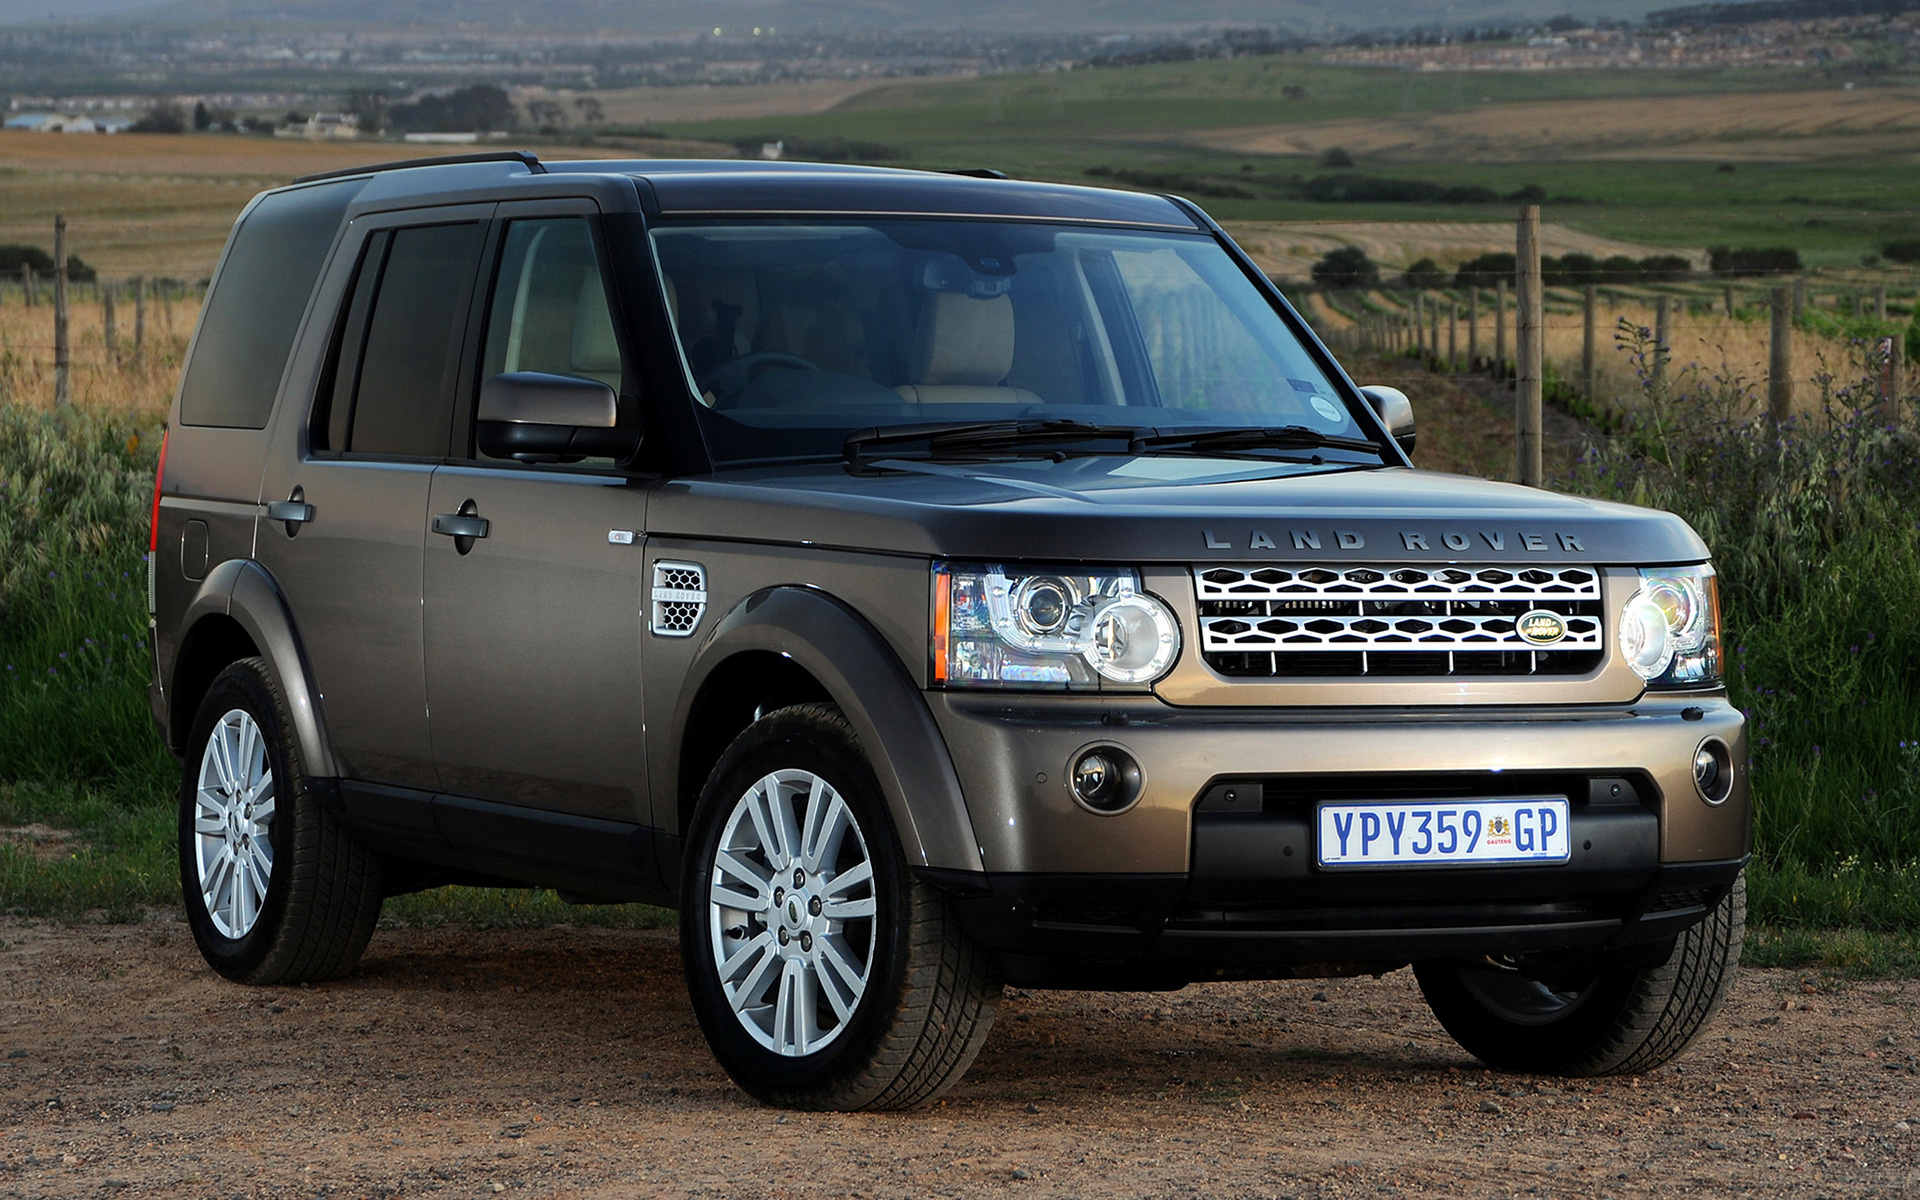 land rover discovery 4 hse 2009 za wallpapers and hd images car pixel. Black Bedroom Furniture Sets. Home Design Ideas